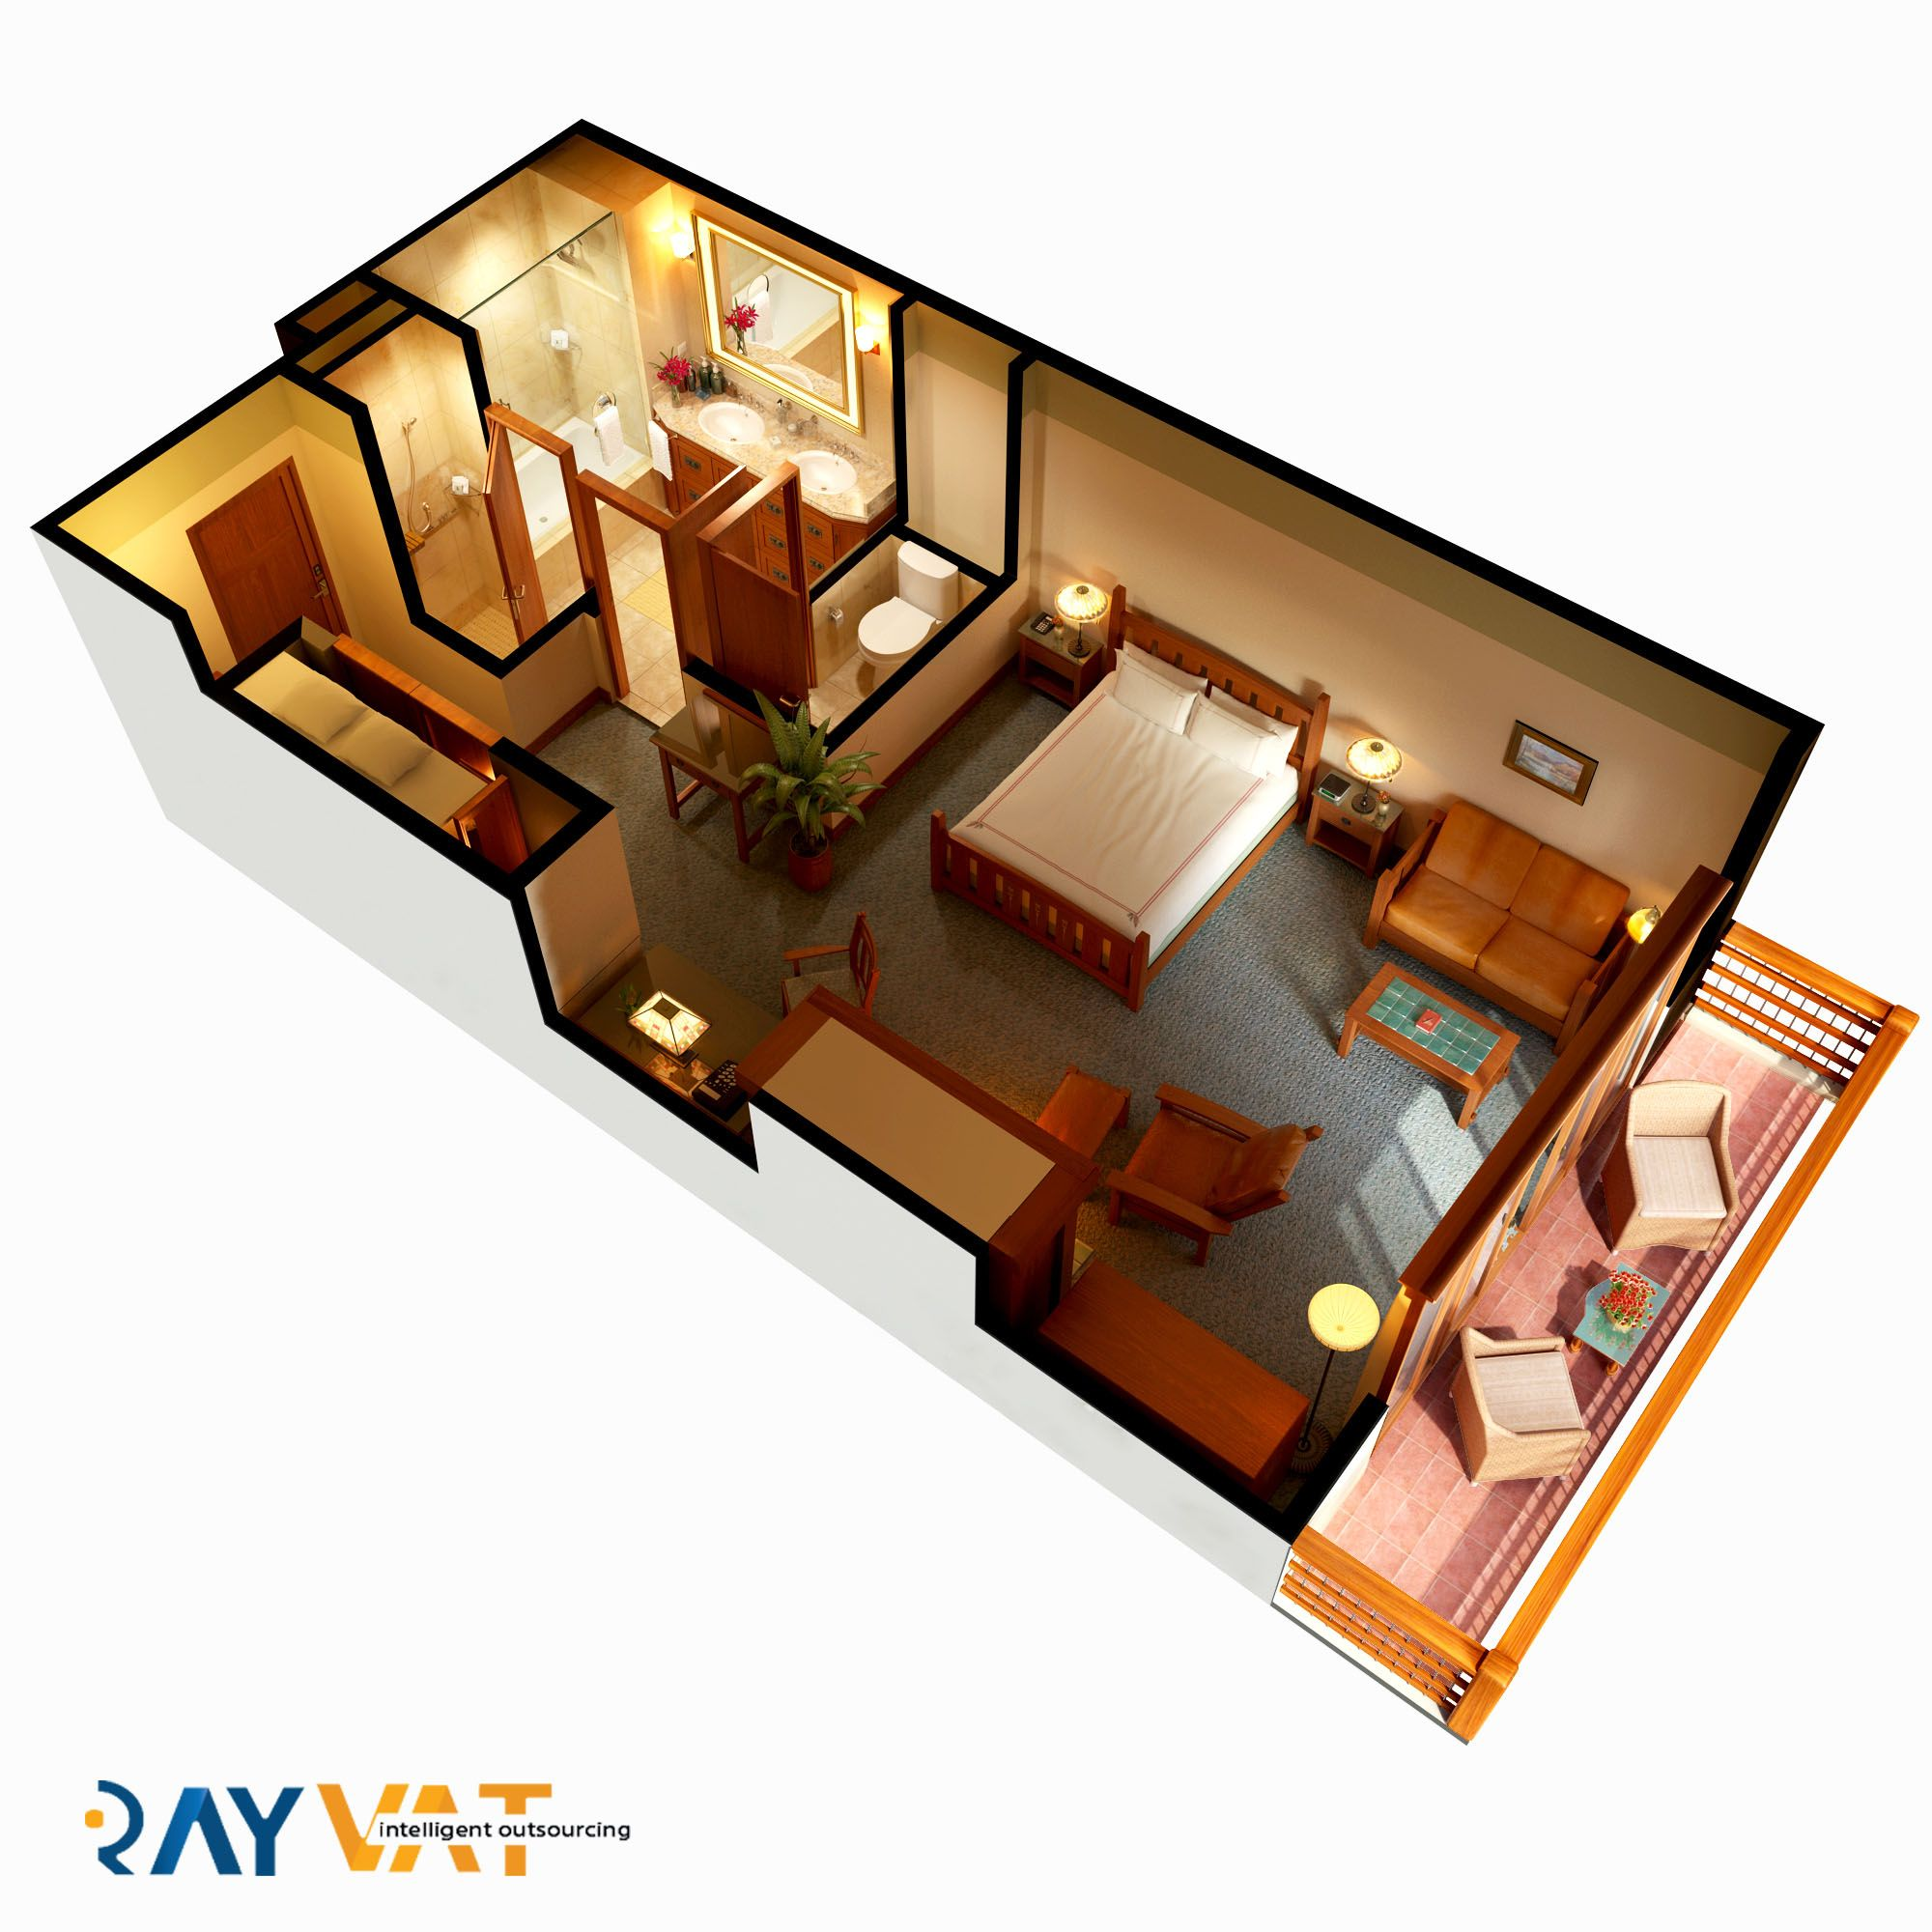 Architectural 3d Floor Plan Rendering: Architectural 3D Floor Plan